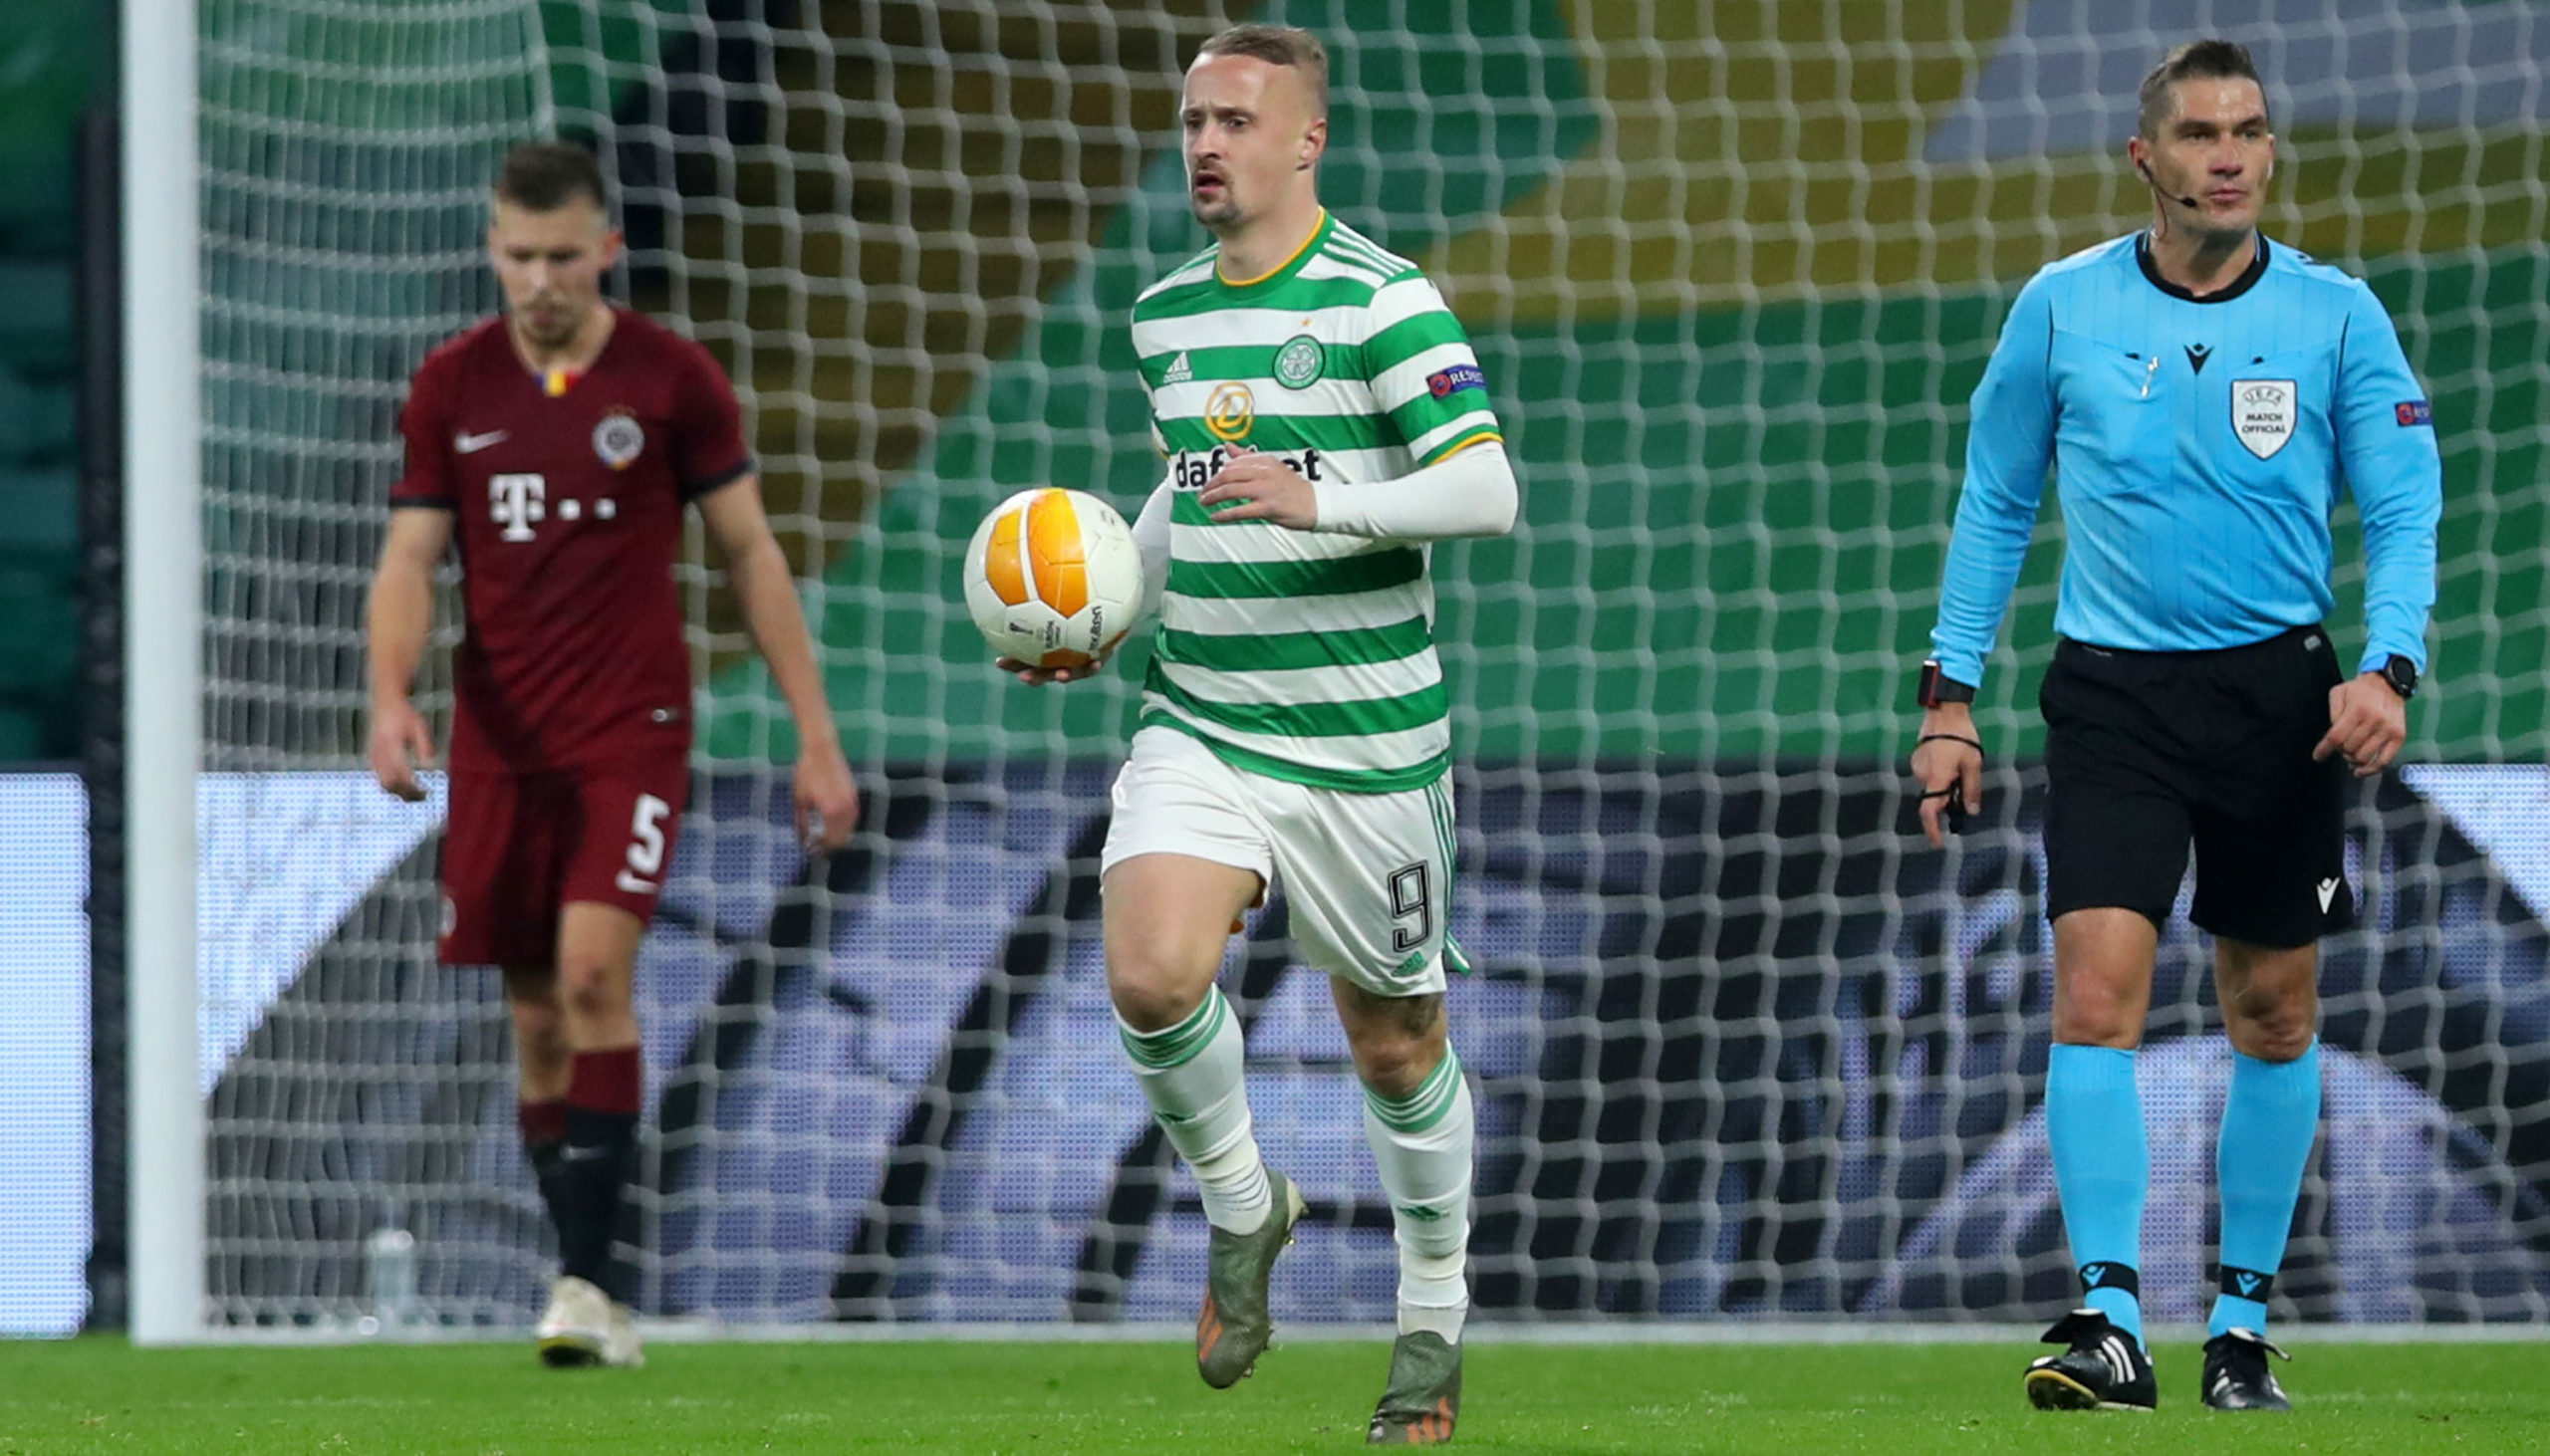 Celtic vs Sparta Prague: Hoops ready for revenge